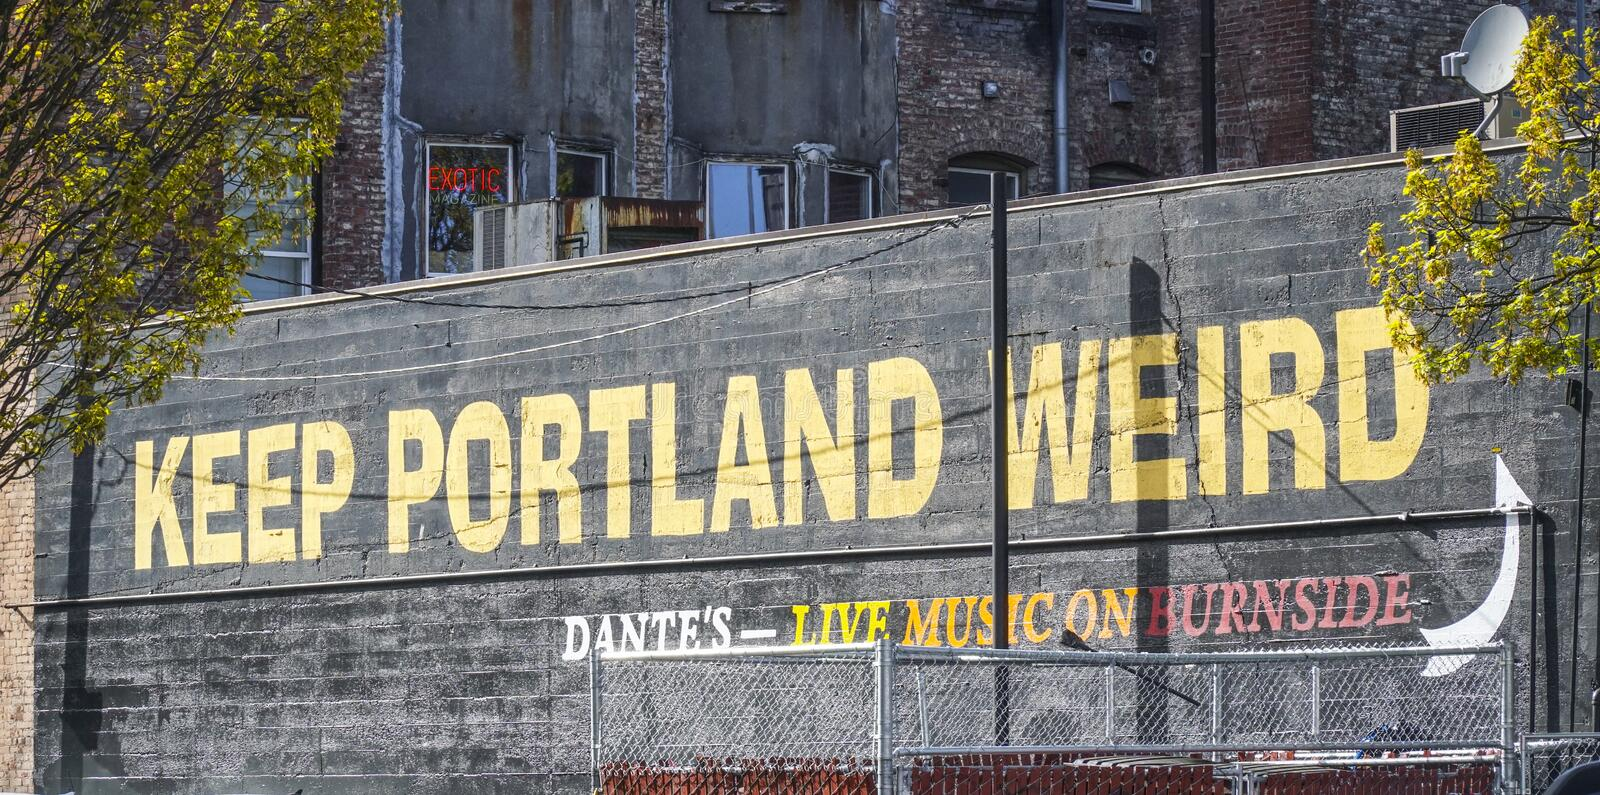 Keep Portland Weird writing in the old town of Portland - PORTLAND - OREGON - APRIL 16, 2017 royalty free stock photography